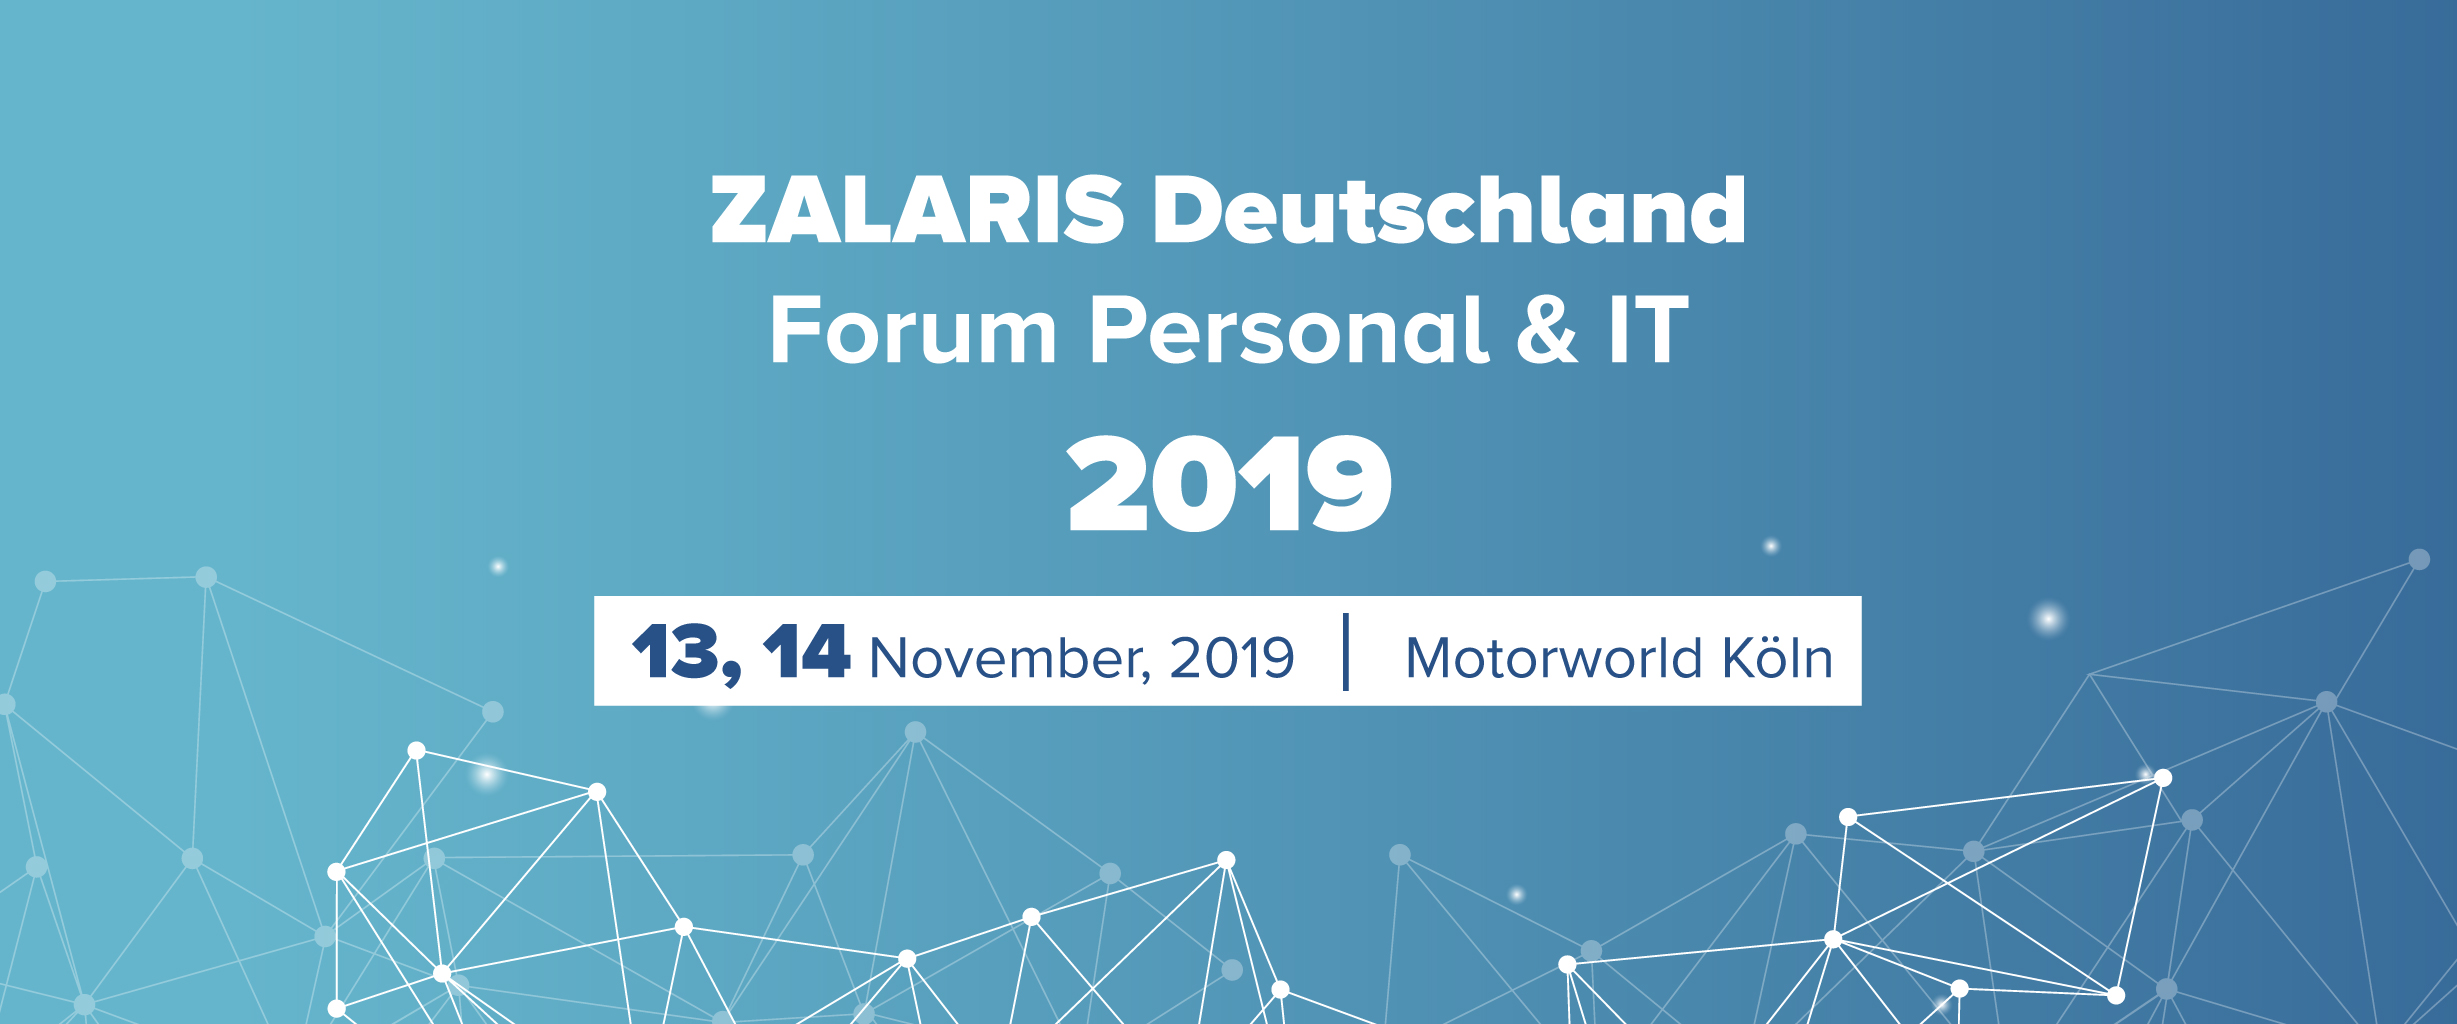 ZALARIS Deutschland Forum Personal & IT 2019 – The SAP Industry Meeting Place for HR Decision Makers and IT Experts Comes to Cologne, Germany